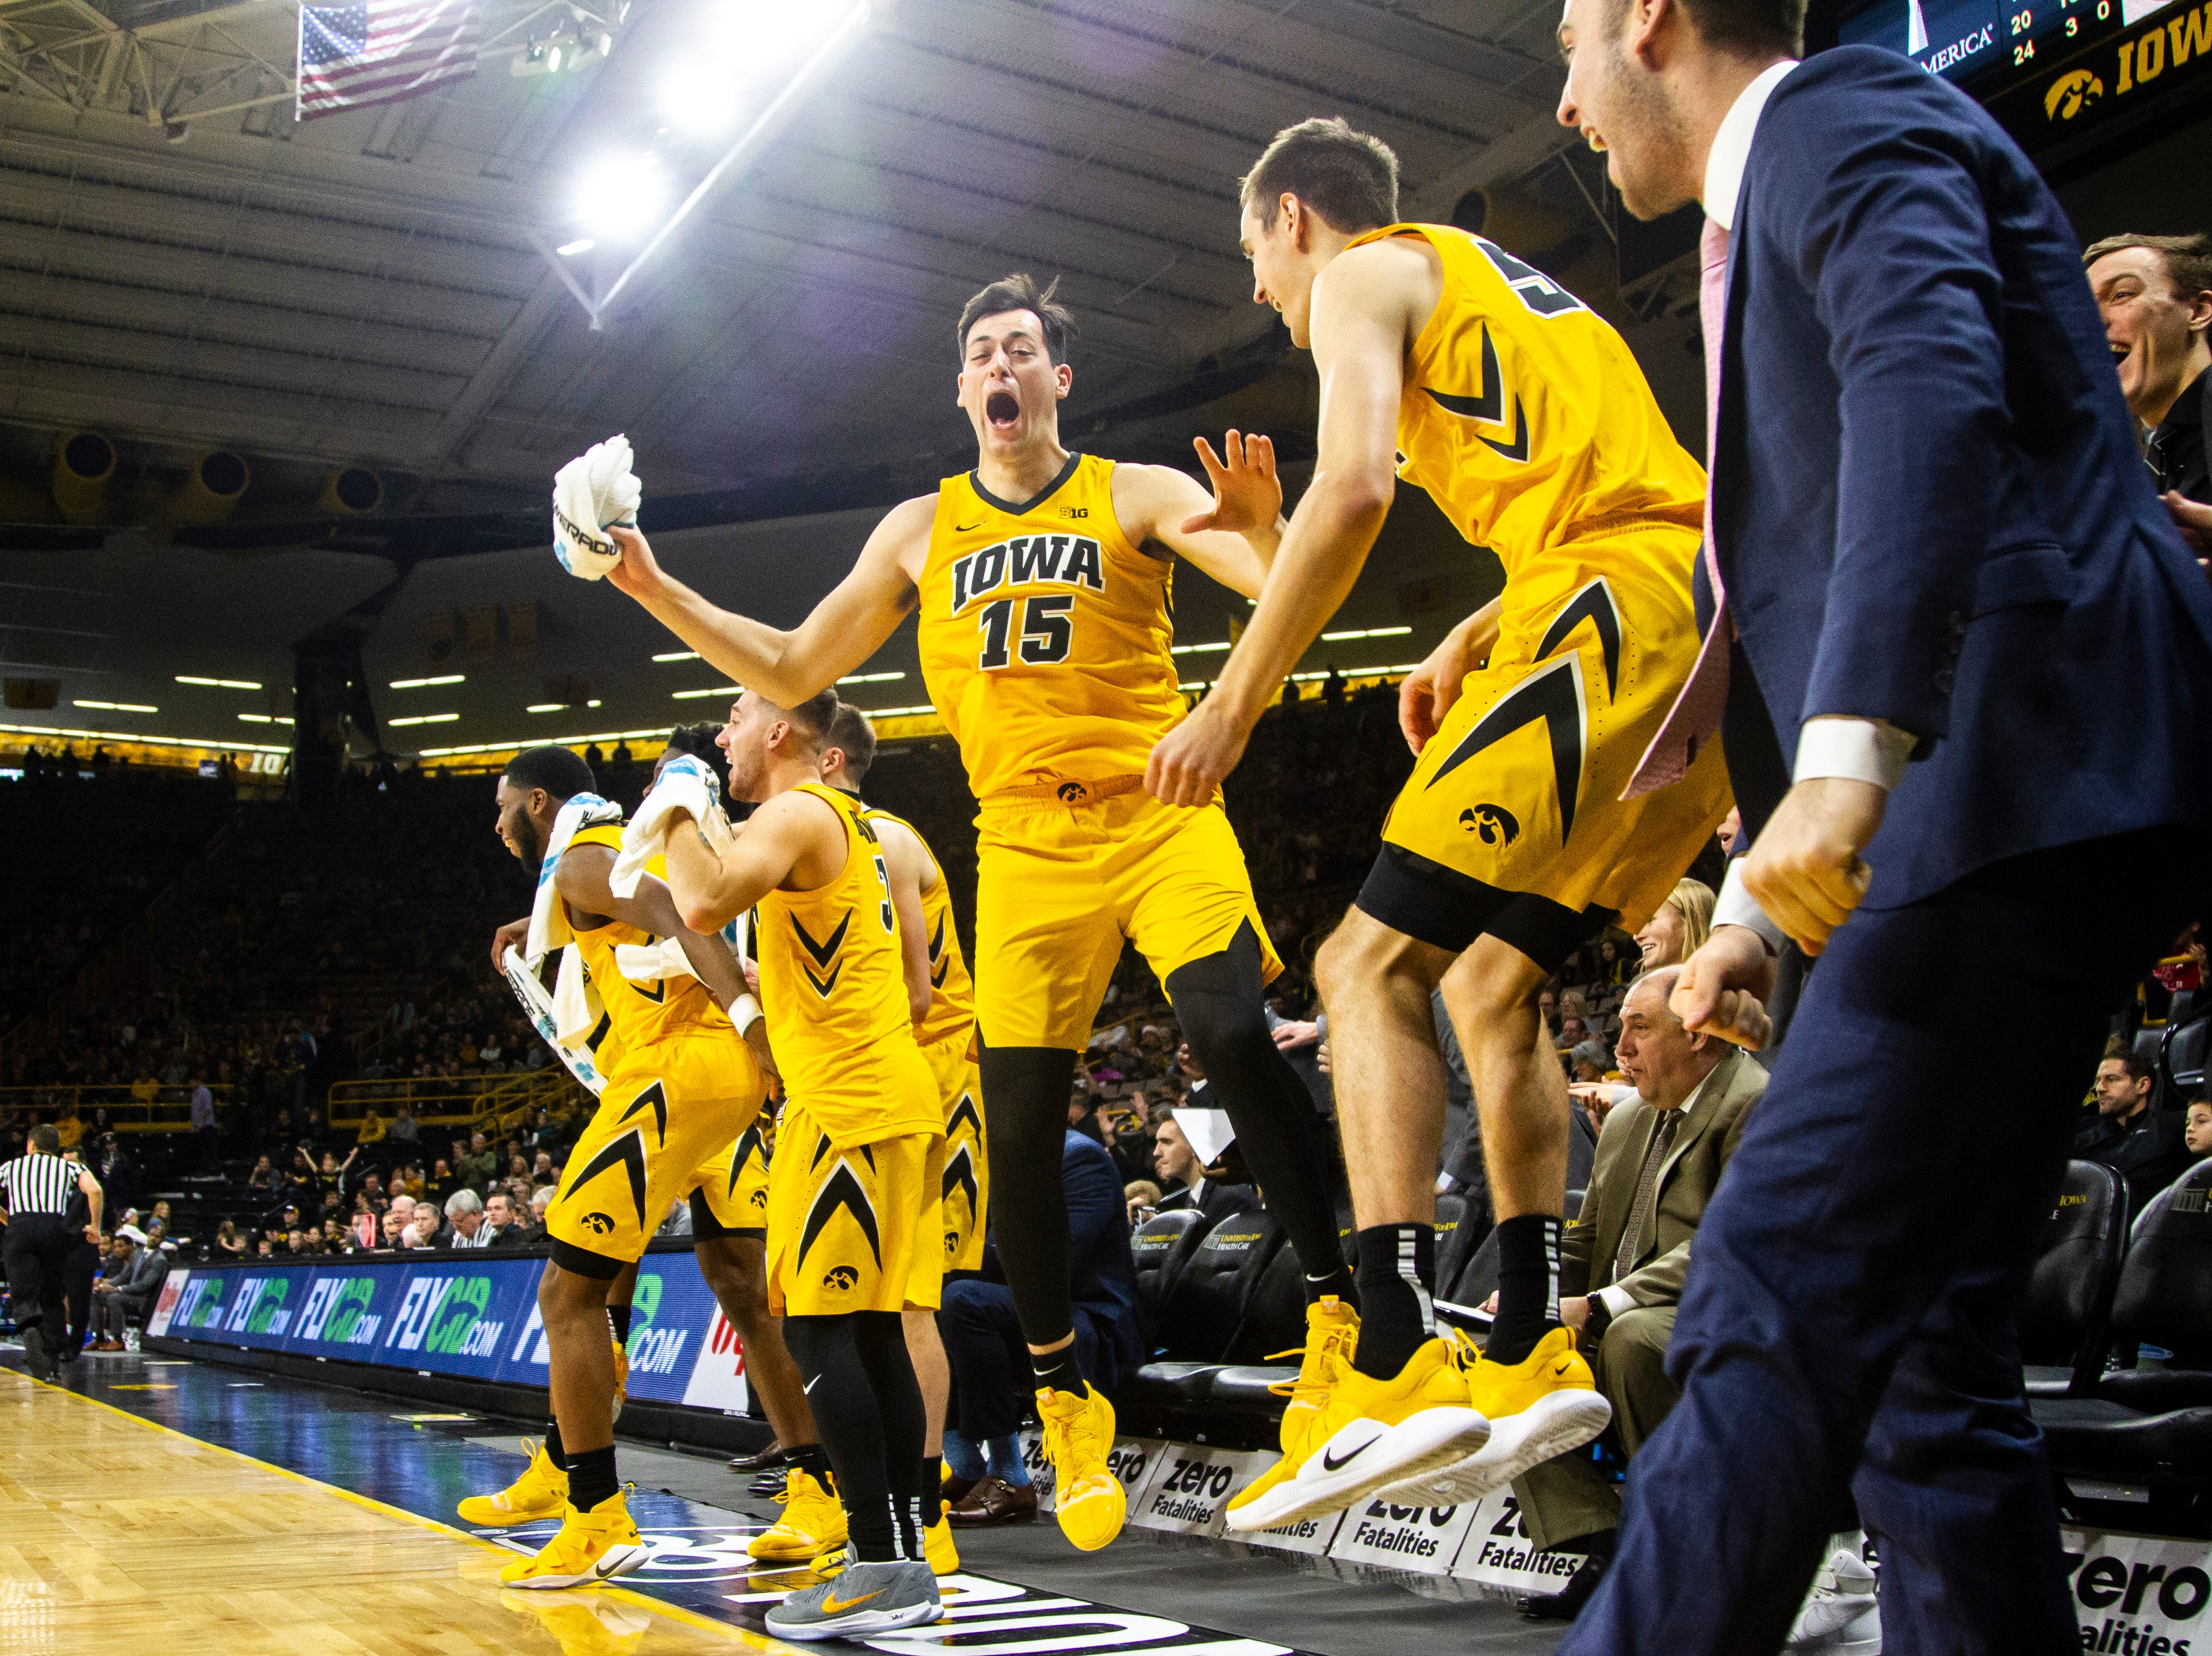 Iowa forward Ryan Kriener (15) leaps in the air with Iowa forward Nicholas Baer (51) while they celebrate a teammate's basket during a NCAA men's basketball game on Saturday, Dec. 22, 2018, at Carver-Hawkeye Arena in Iowa City.